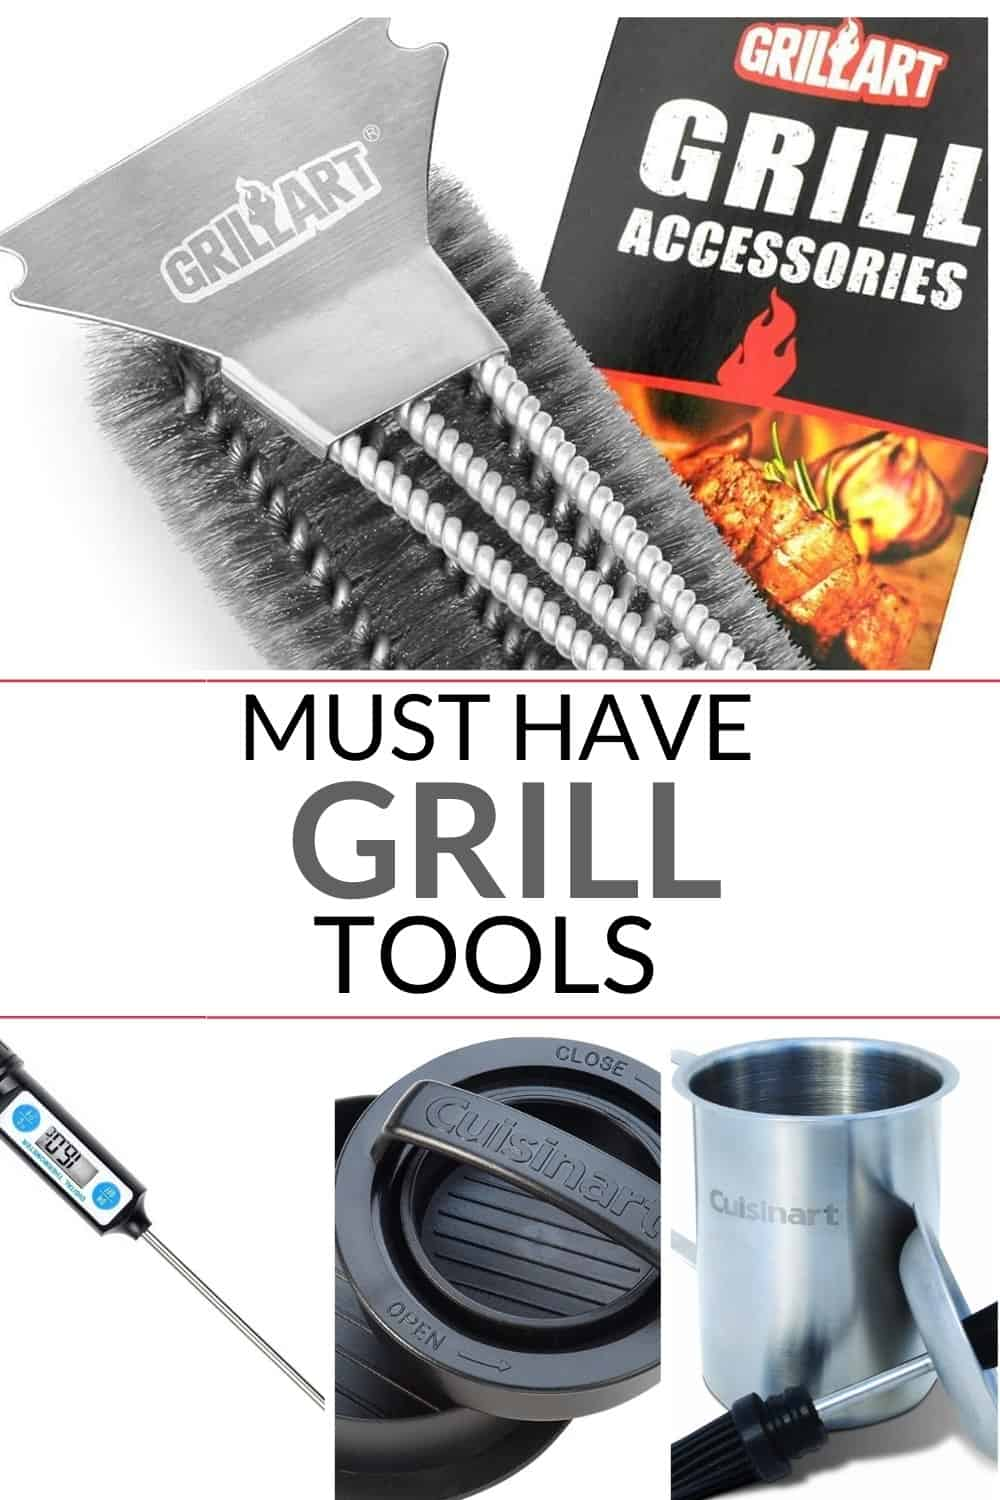 an excellent list of must have grill accessories that you need to take your grilling to the next level